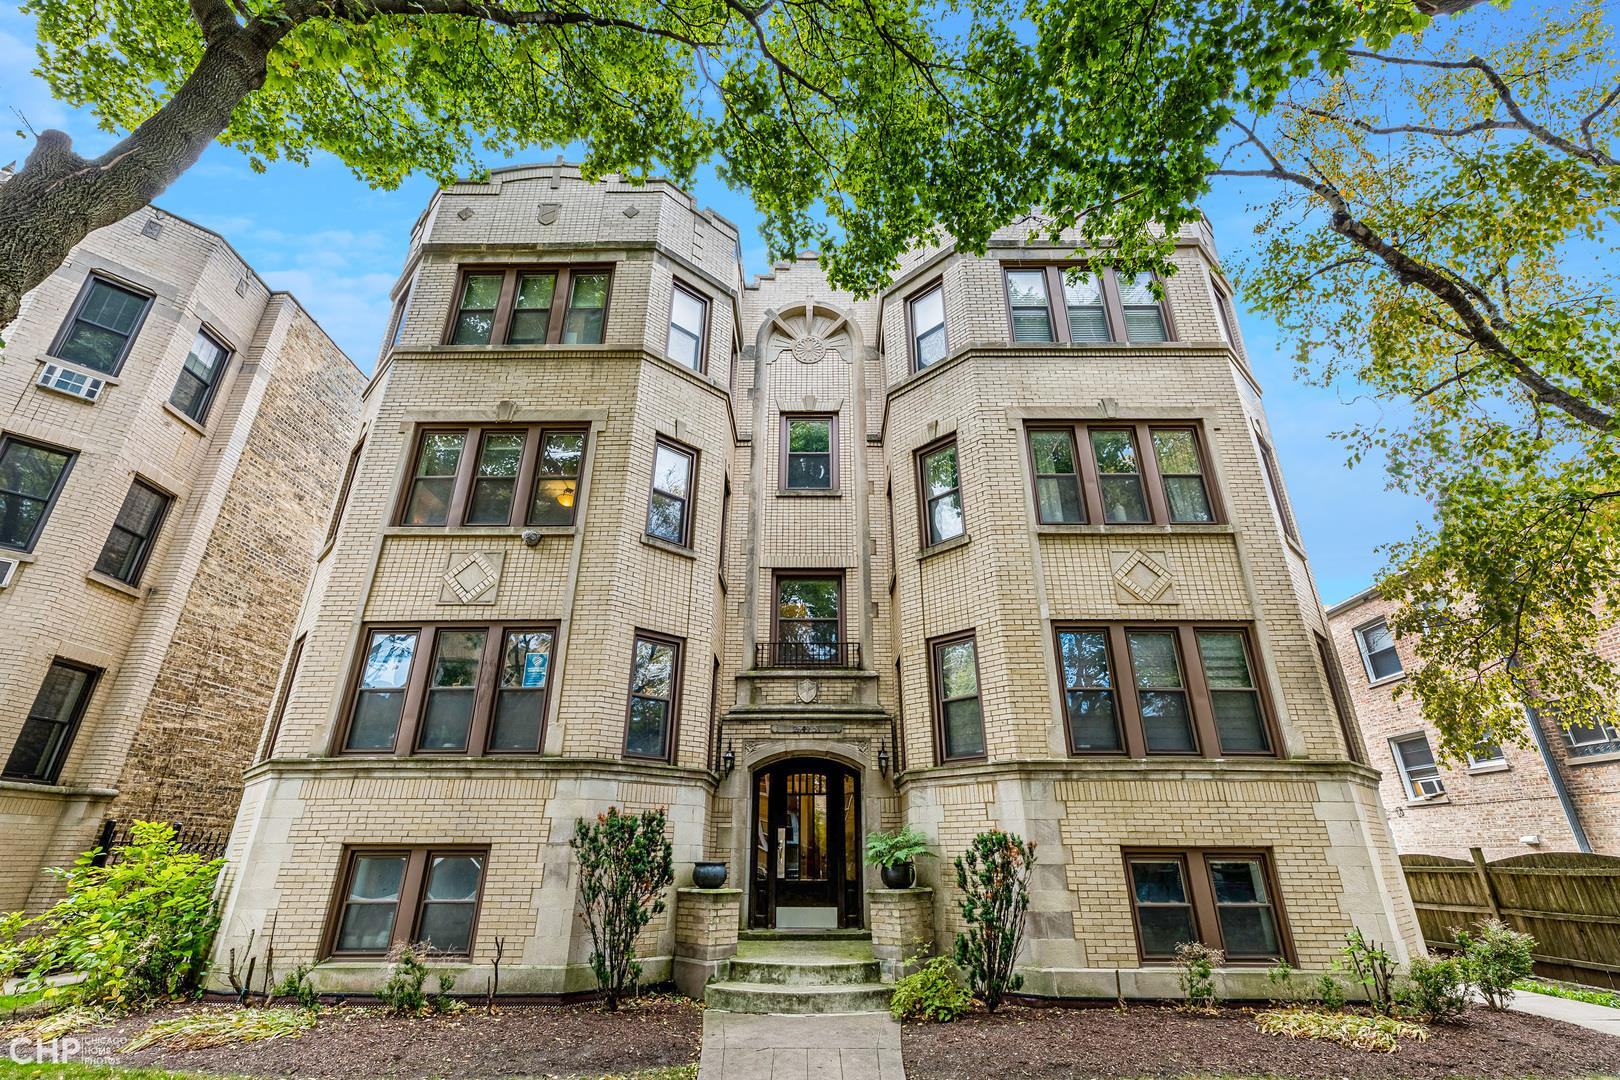 2649 W GREENLEAF Avenue #2E, Chicago, IL 60645 - #: 10930163